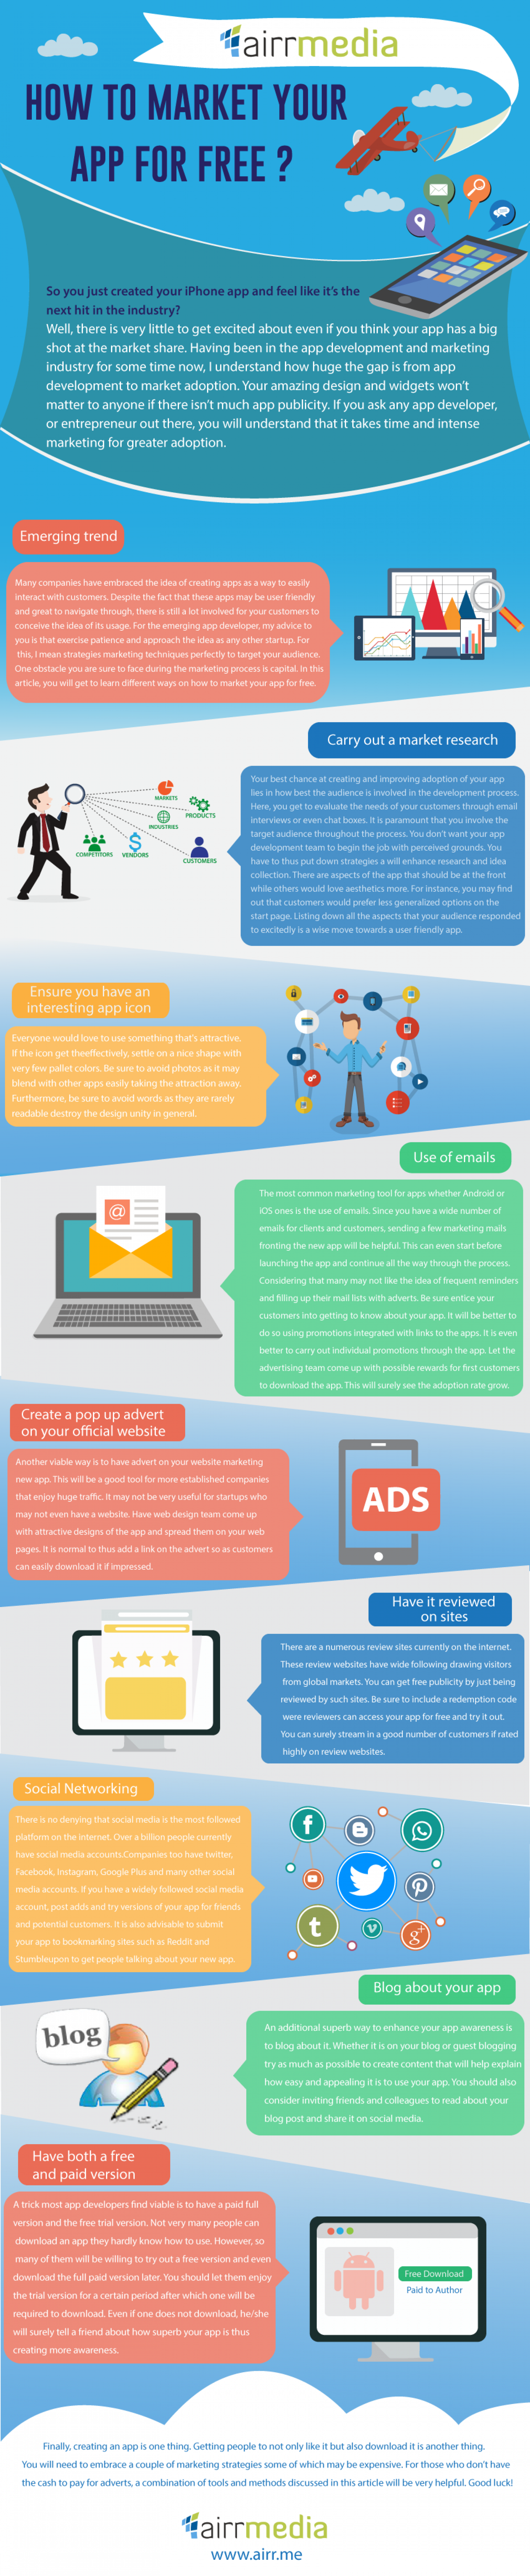 HOW TO MARKET YOUR APP FOR FREE  Infographic